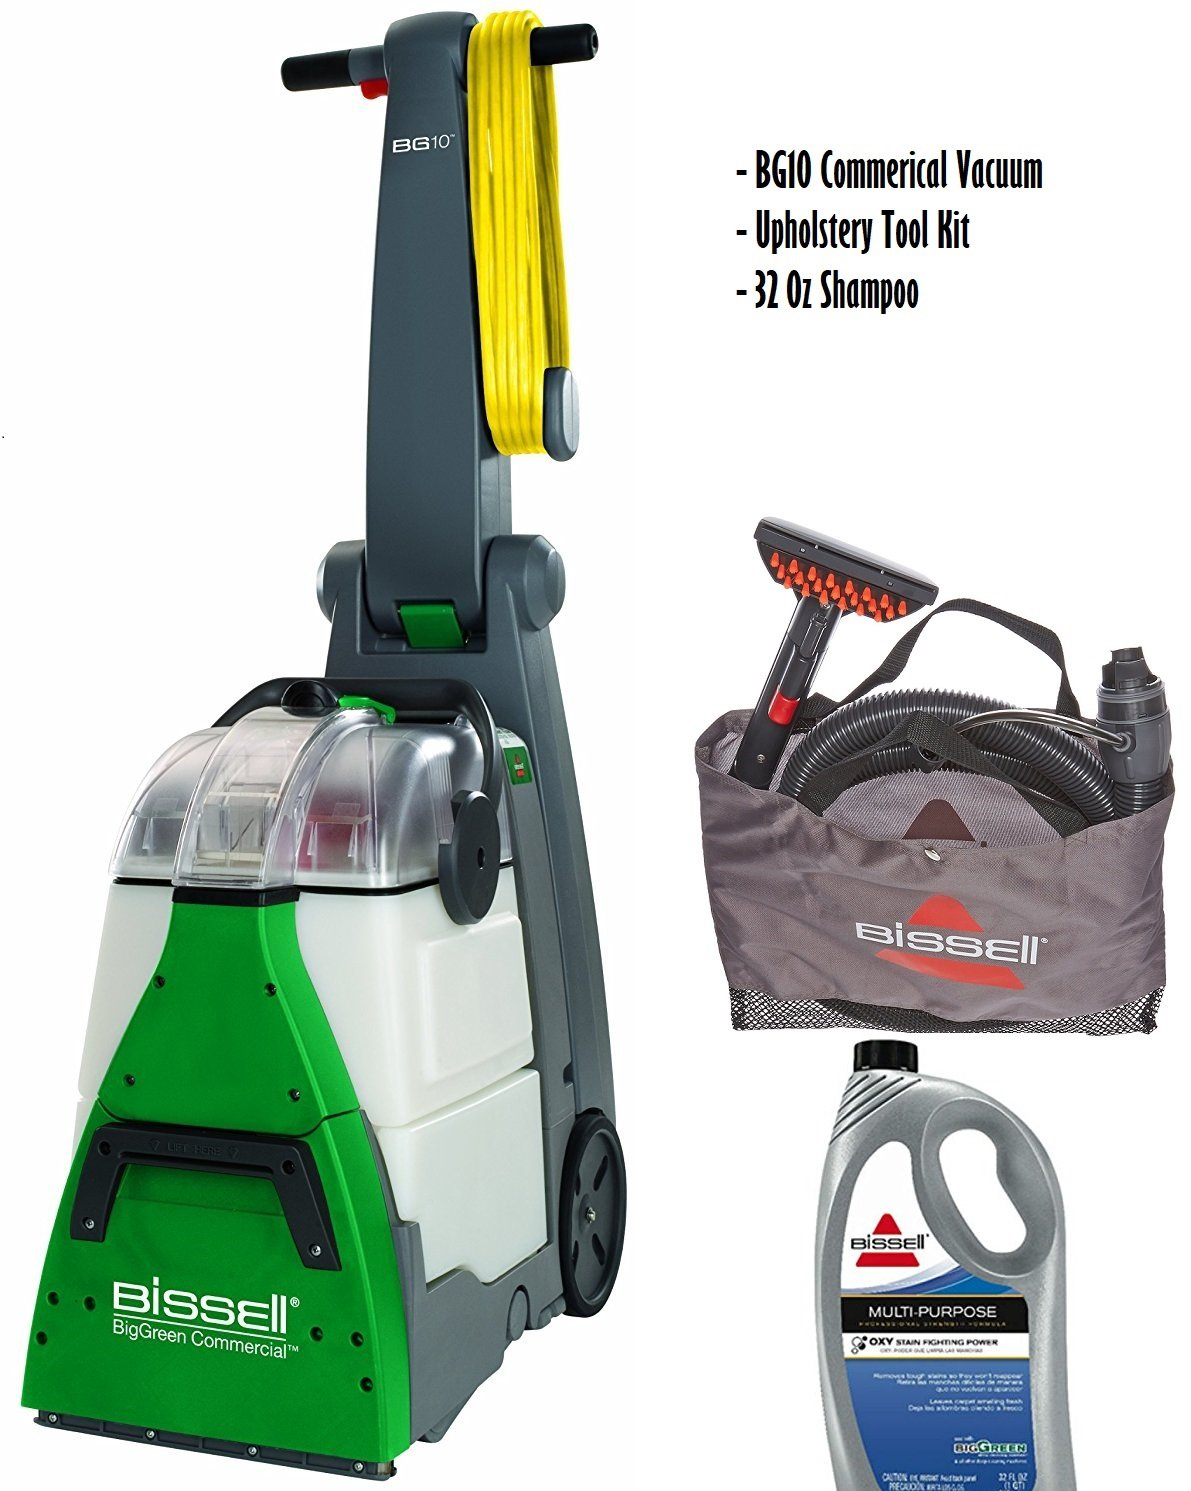 Best rated in commercial floor cleaning machines helpful customer bissell biggreen commercial bg10 deep cleaning 2 motor extracter machine w upholstery tool and 32 oz shampoo bundle fandeluxe Gallery